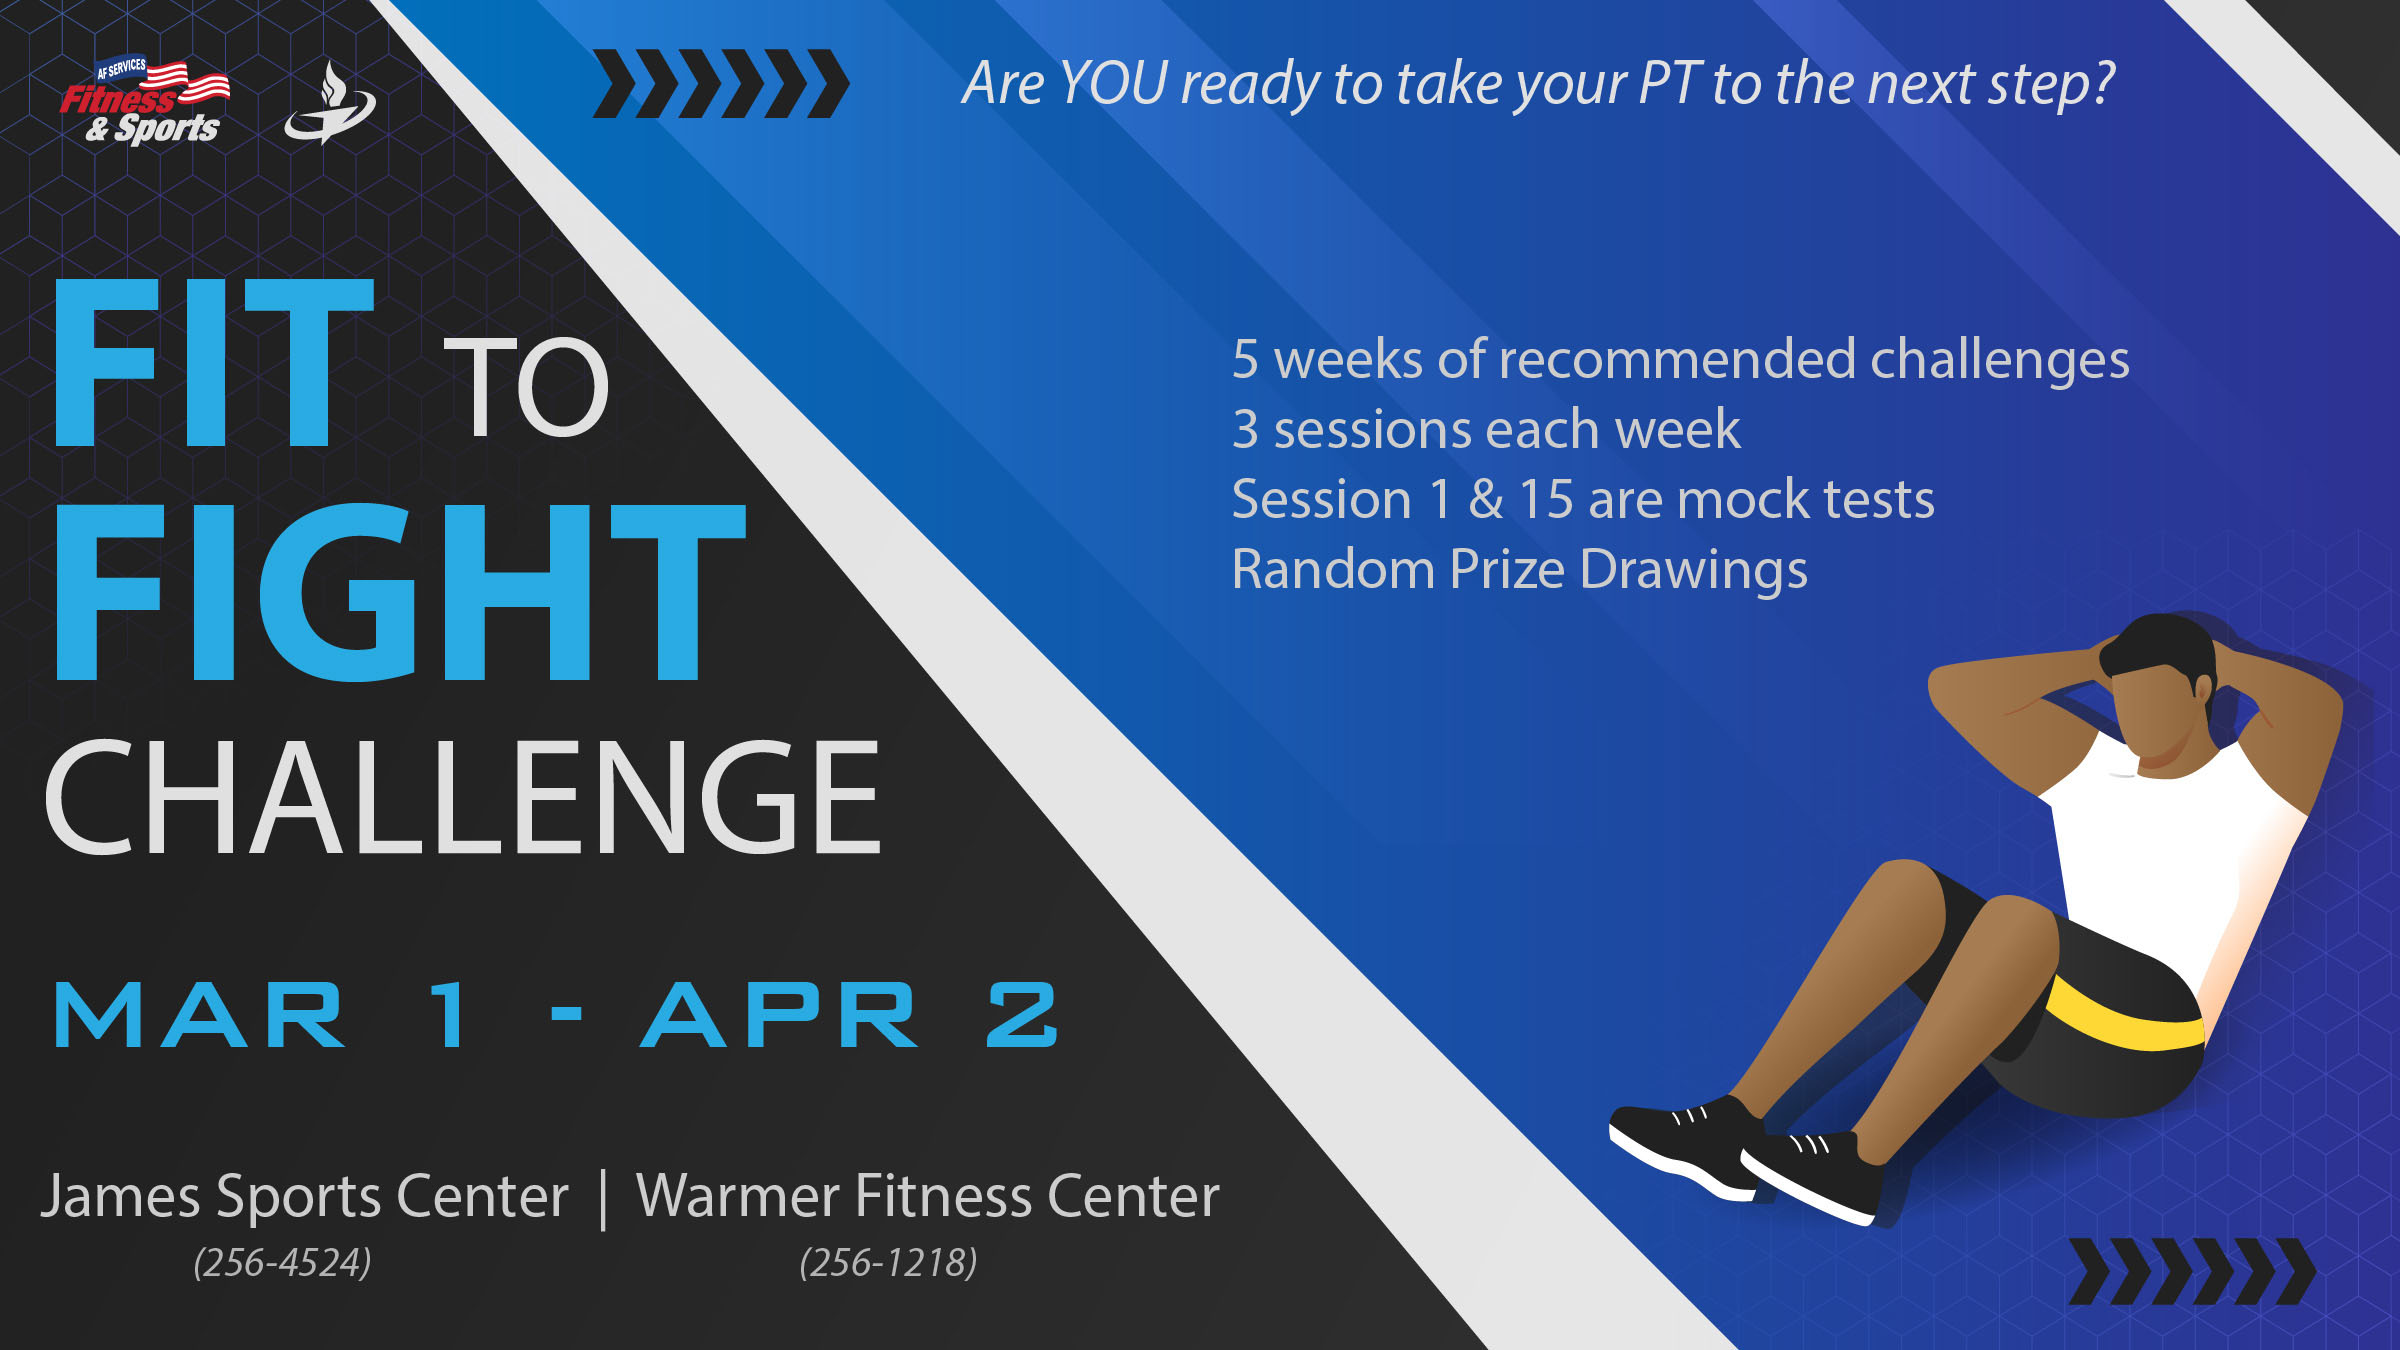 Fit to Fight Challenge